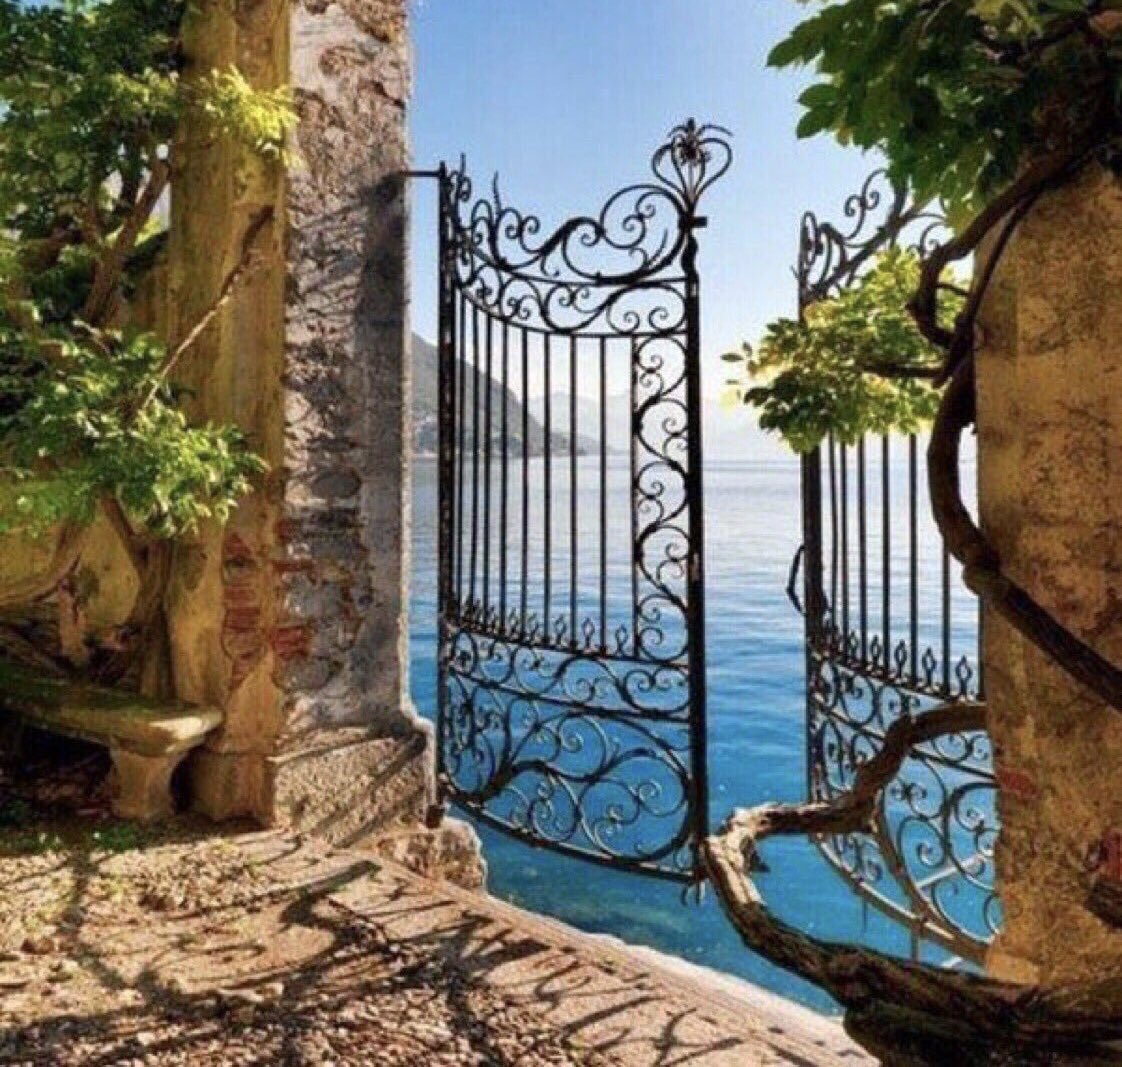 ❦Keep the gates of your heart ever open, for if you attempt to baracade yourself from all pain you will also shut out the advances of joy. ~Anne Scottlin #motivationalquotes #photo #LakeComo #anon #fridaymotivation #fridayfeeling